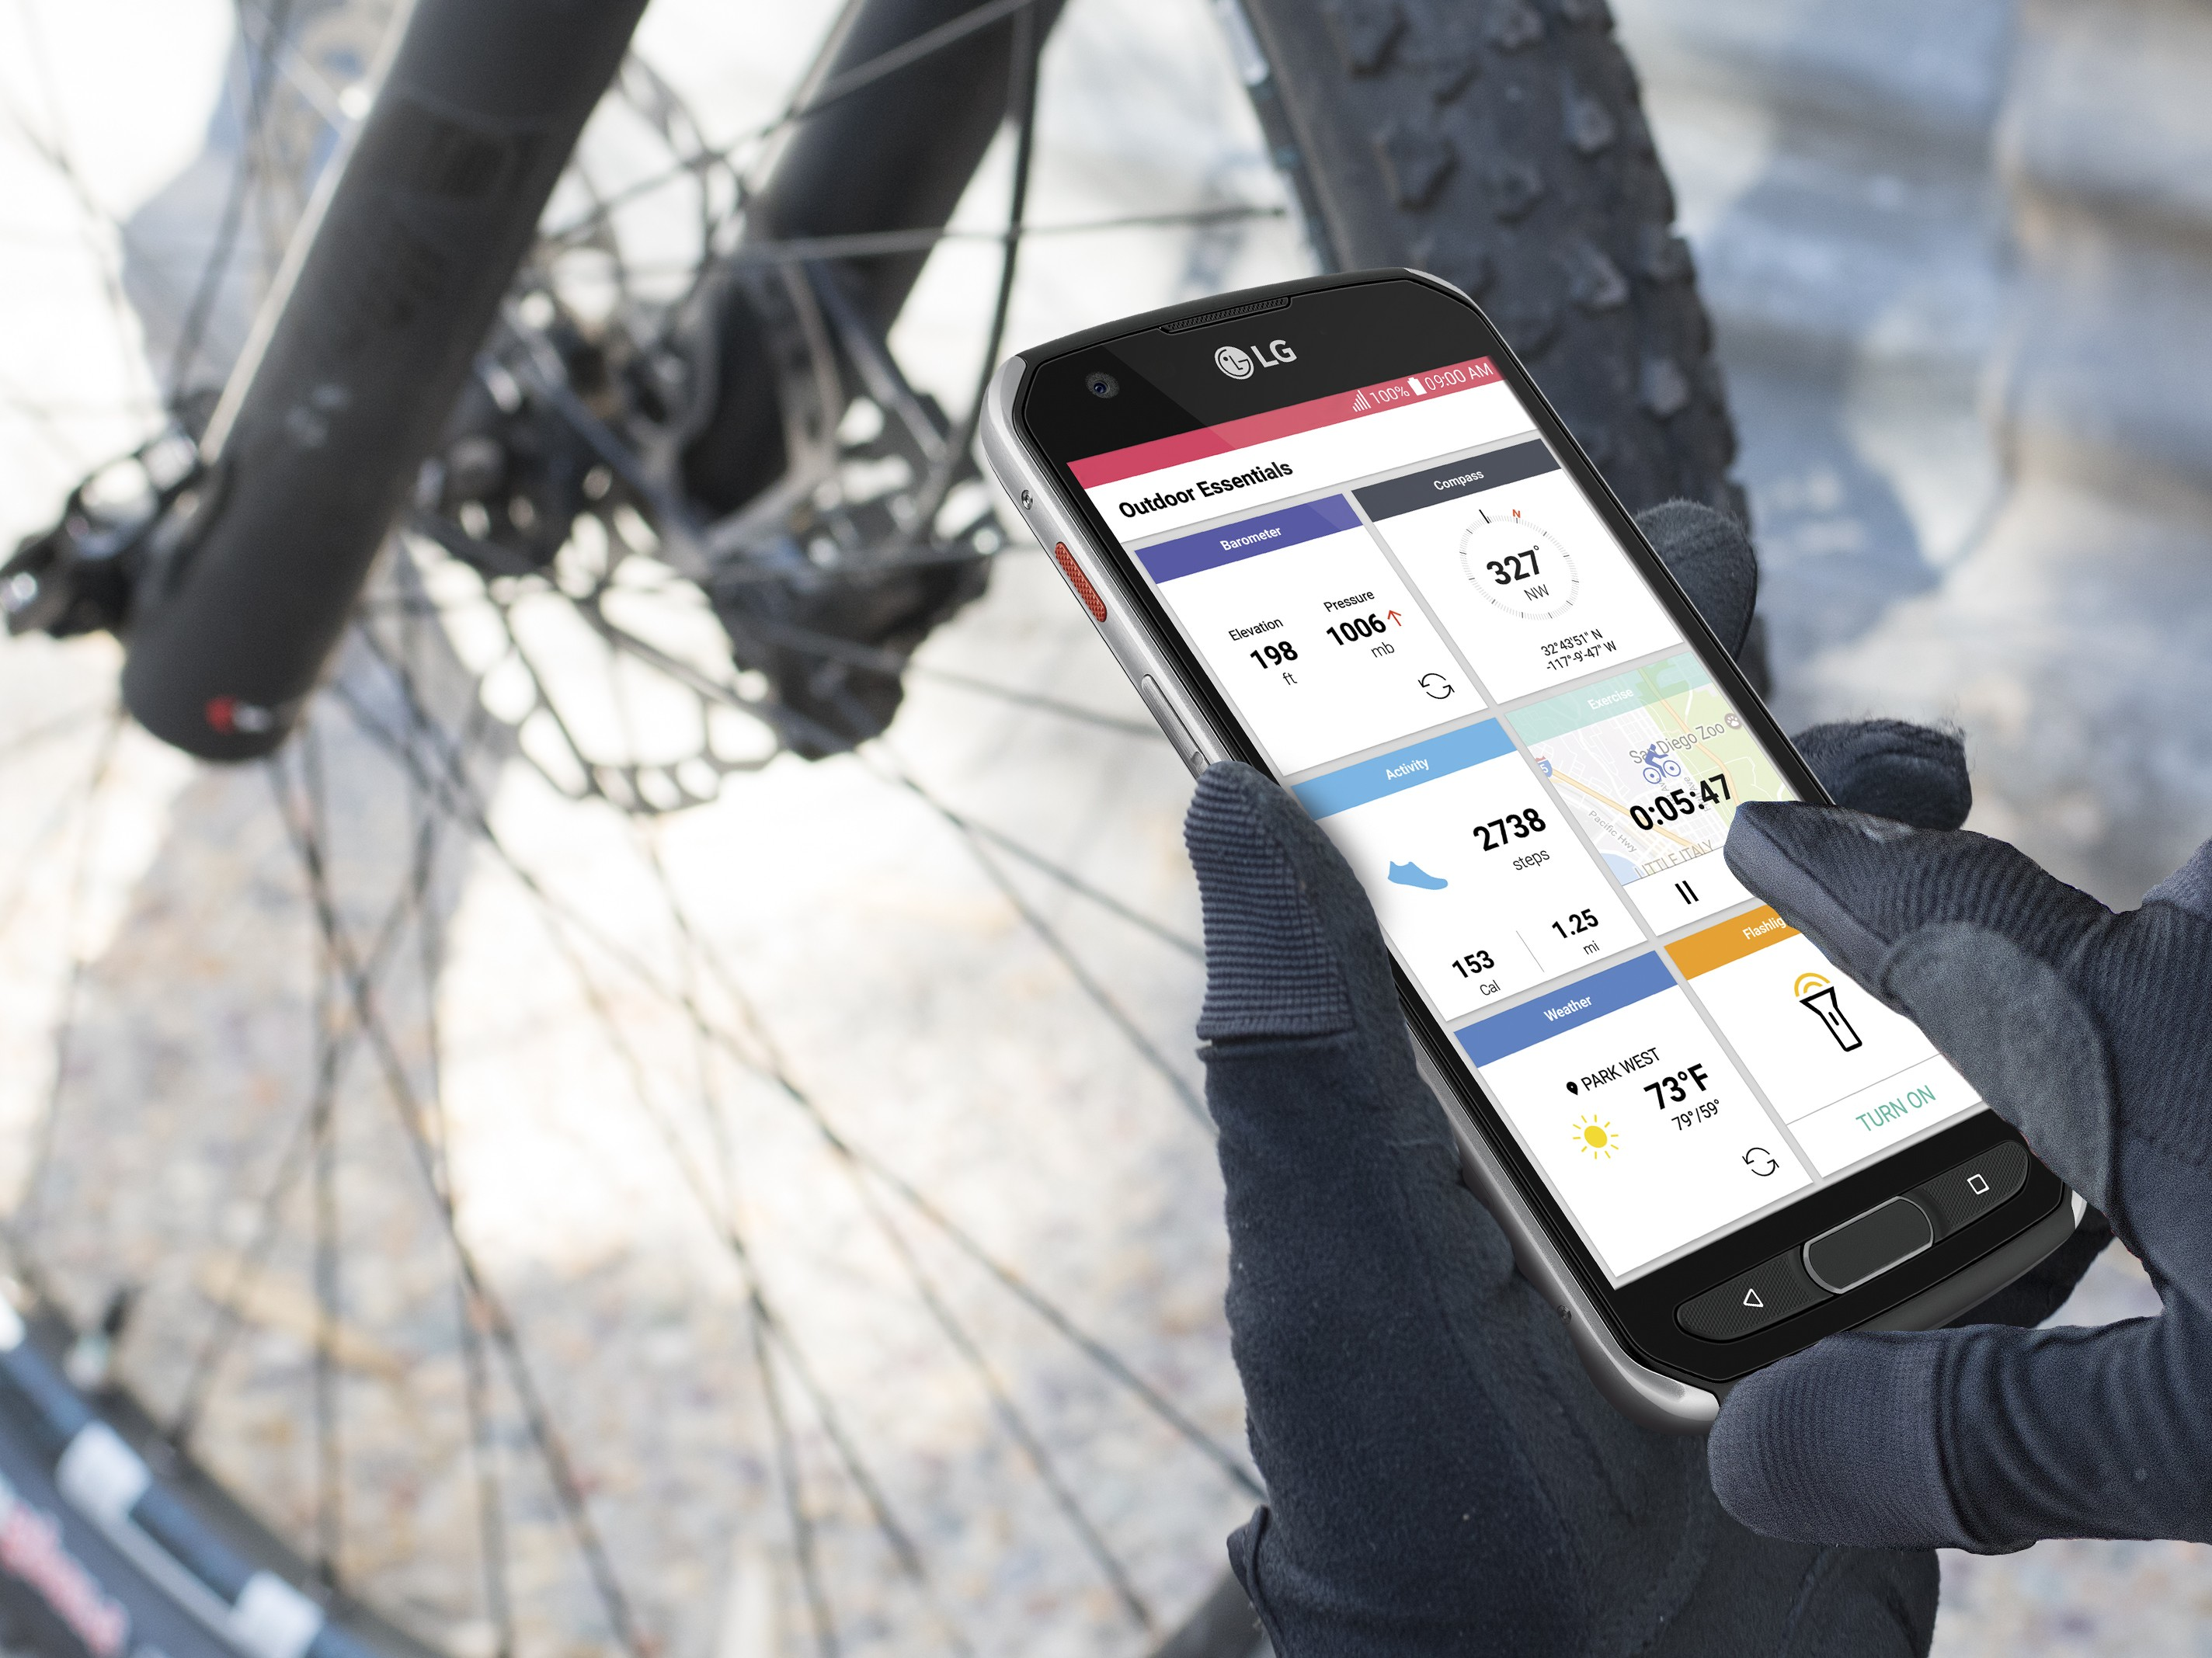 A person in front a bike holding the LG X venture, looking at exercise records on the device's Outdoor Essentials app